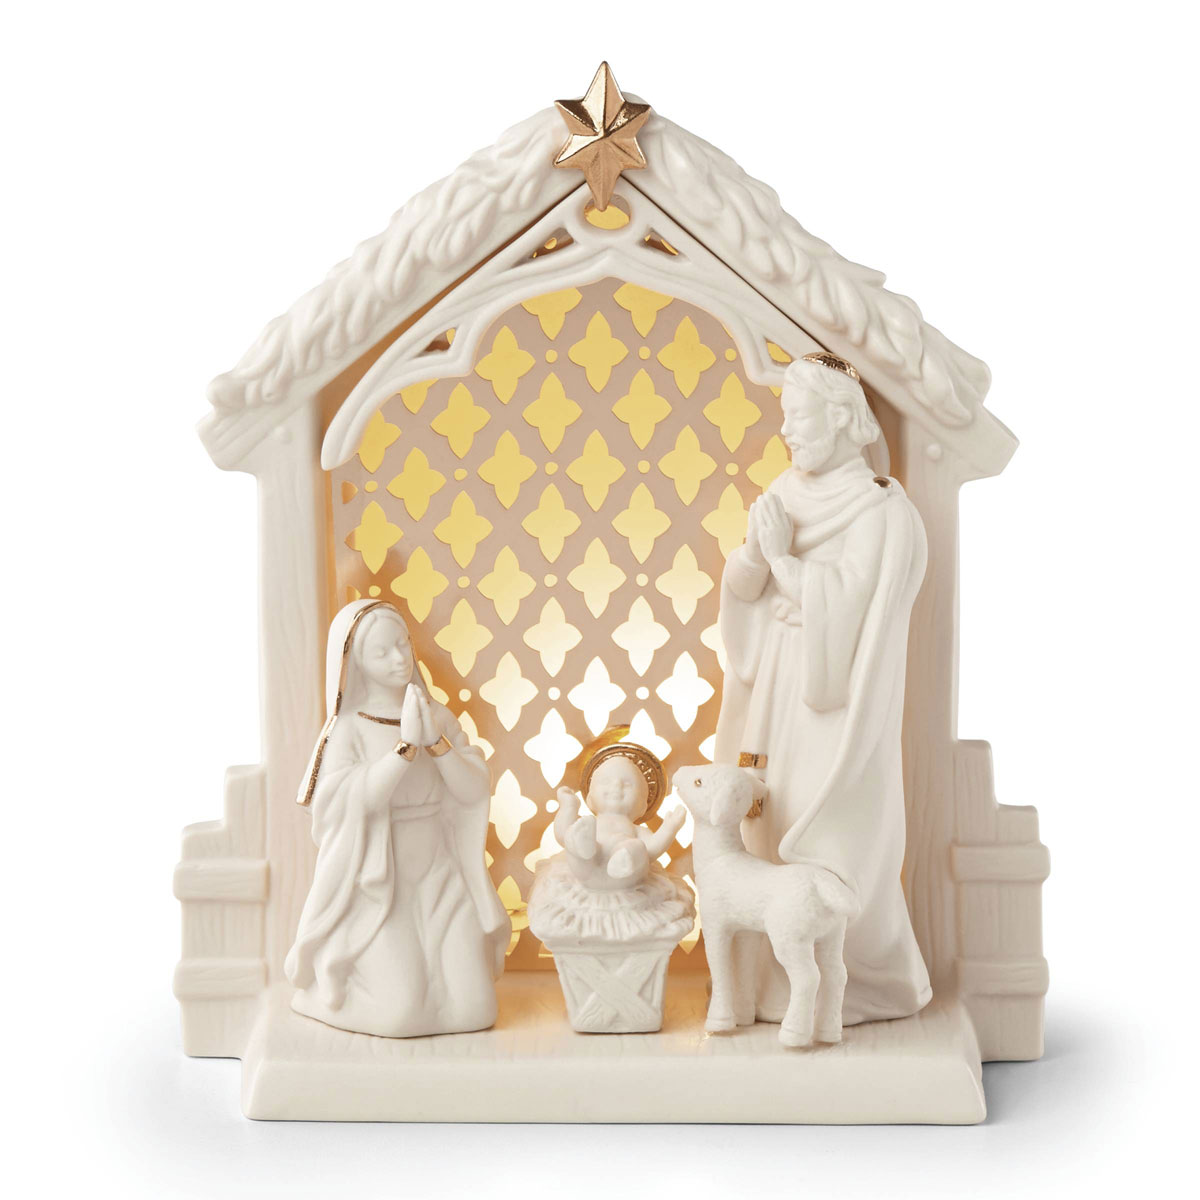 Lenox Illuminations Lit Nativity Christmas Scene